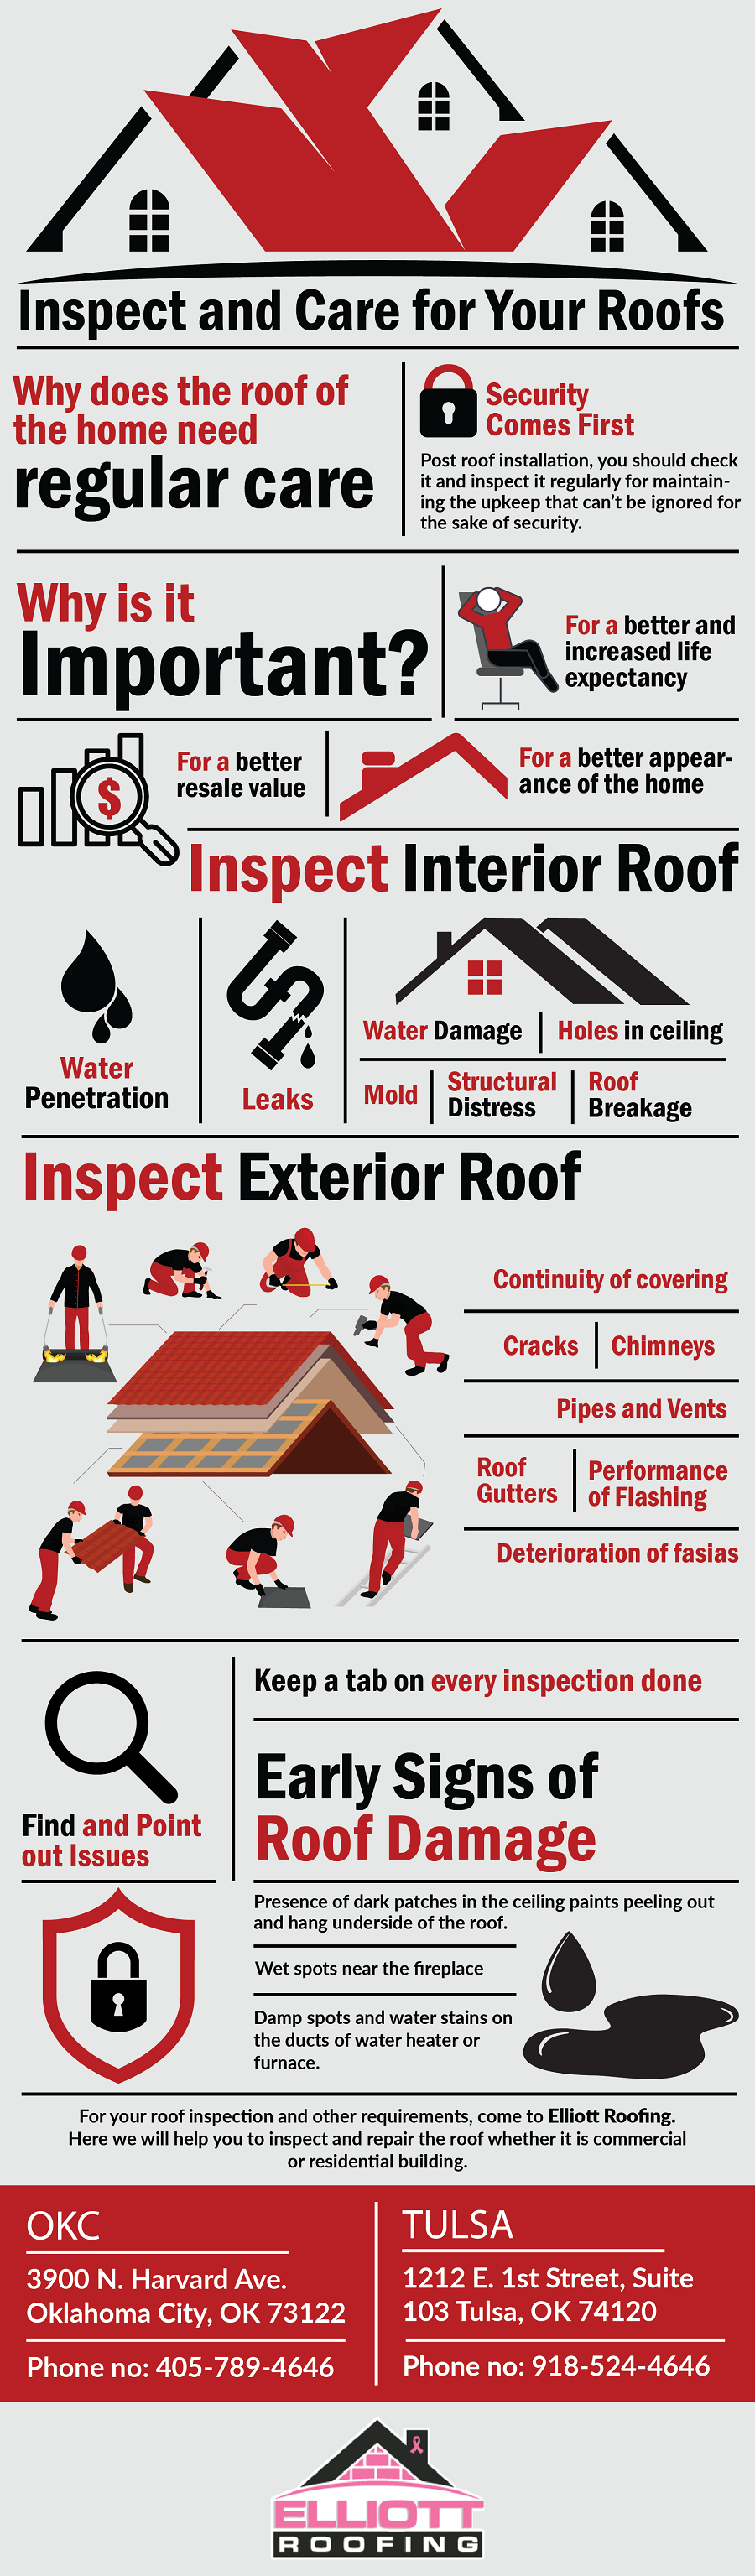 Inspect and care for roof.png